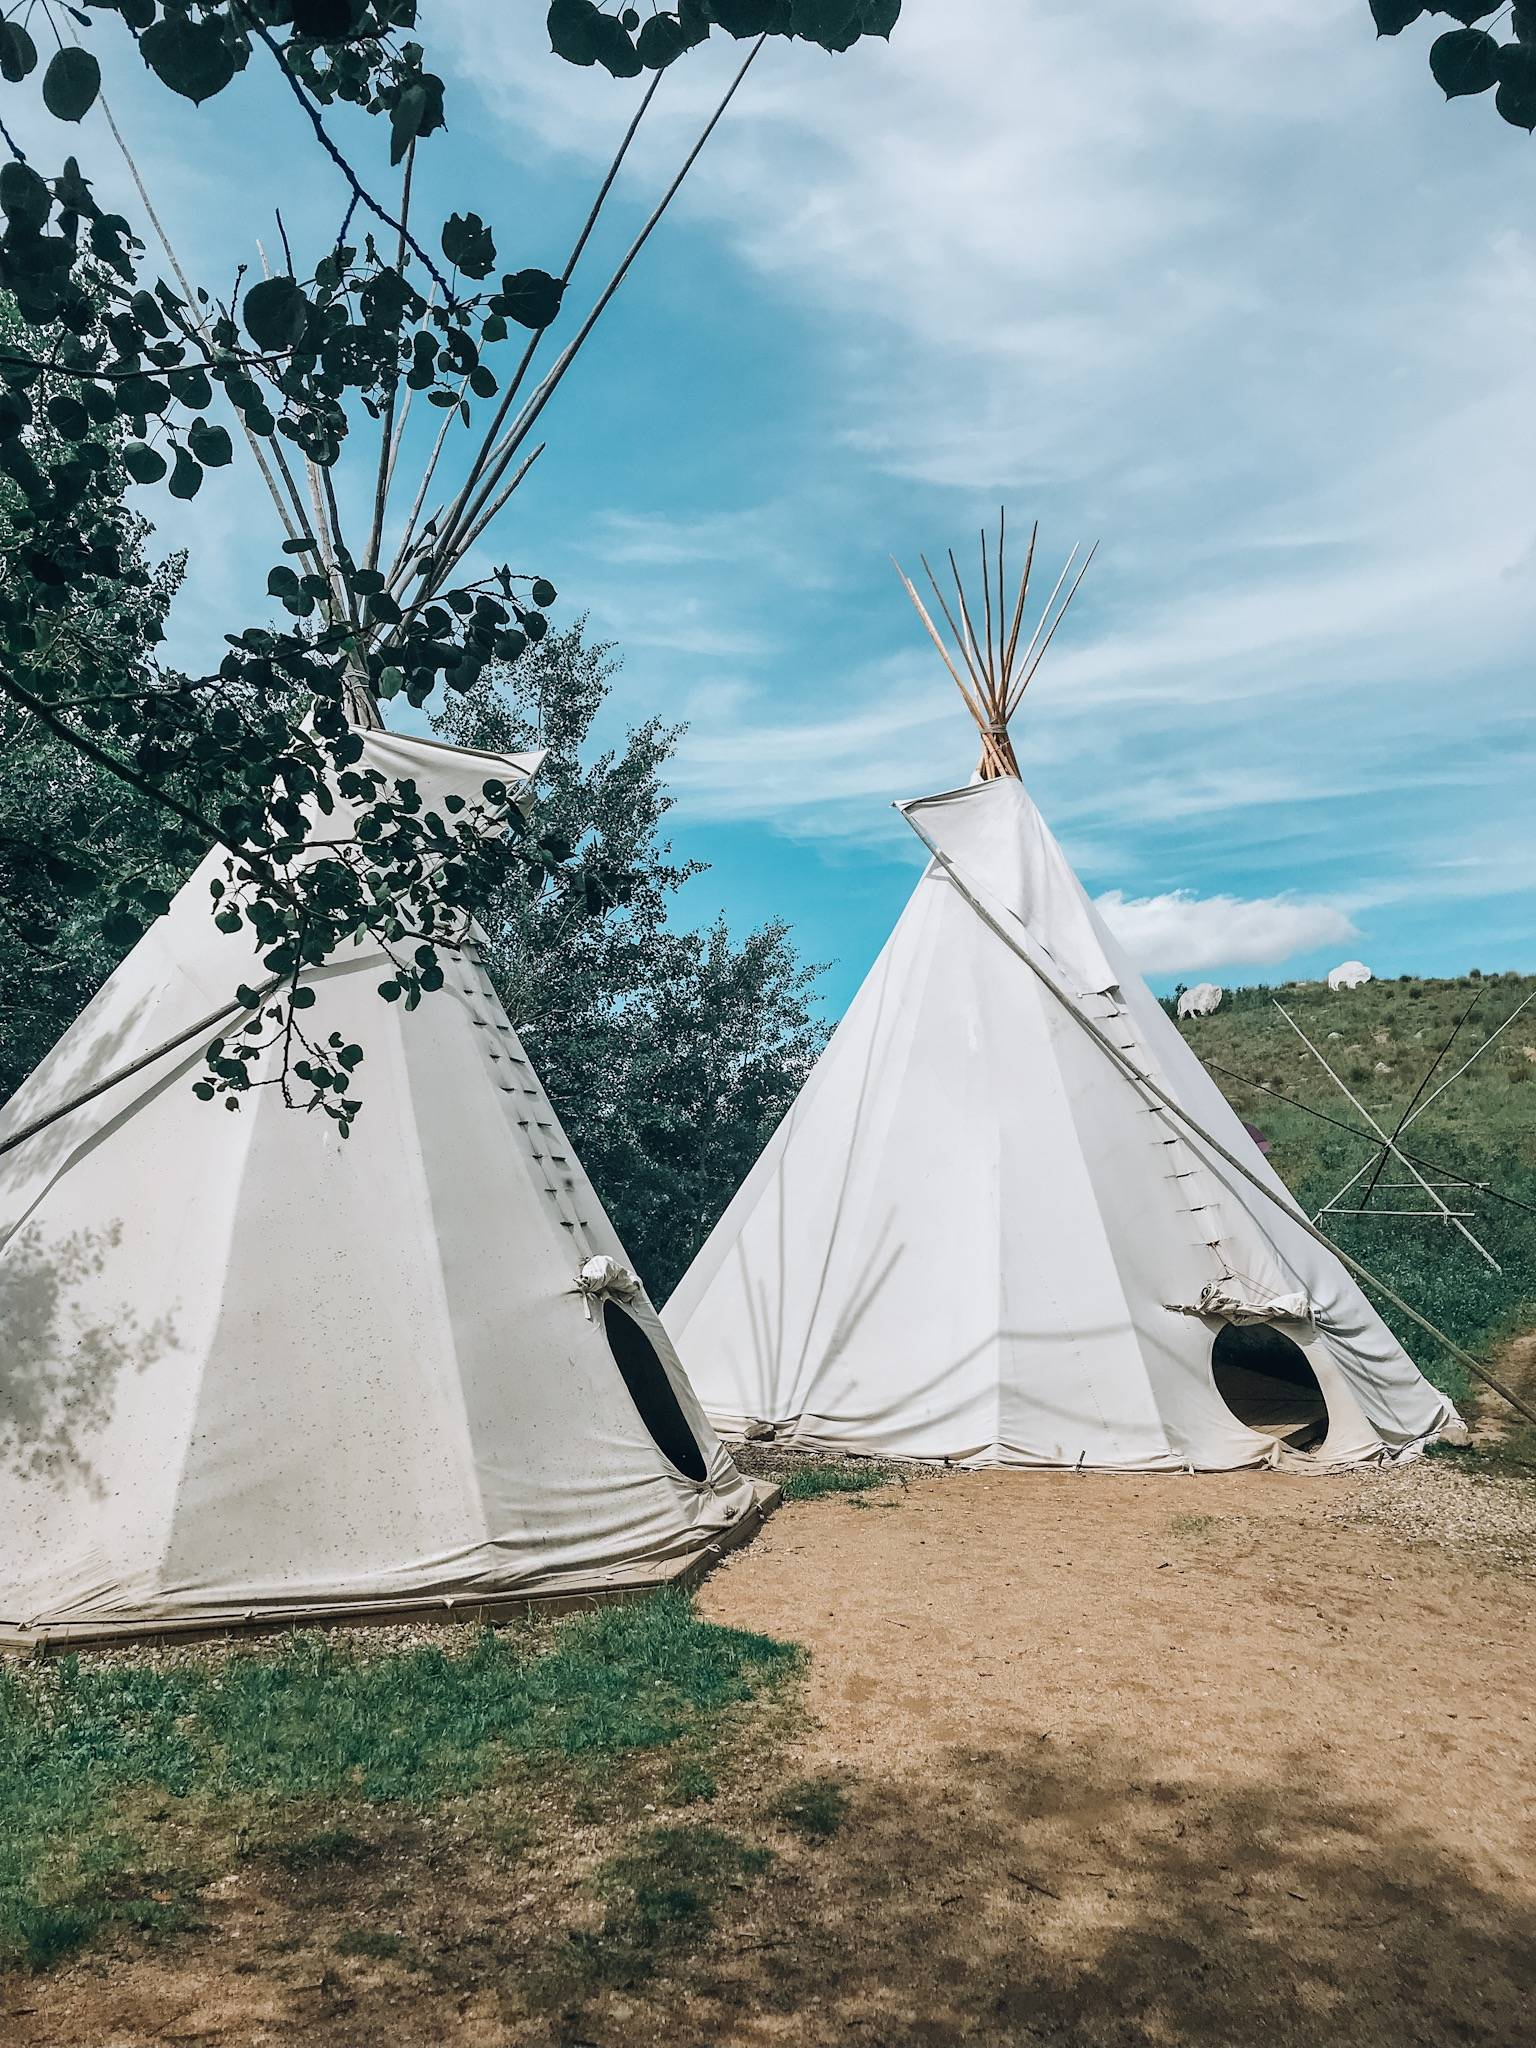 Planning a trip to Saskatoon? Check out this guide covering everything to do, see and eat in Saskatoon including a trip to Wanuskewin Heritage Park.